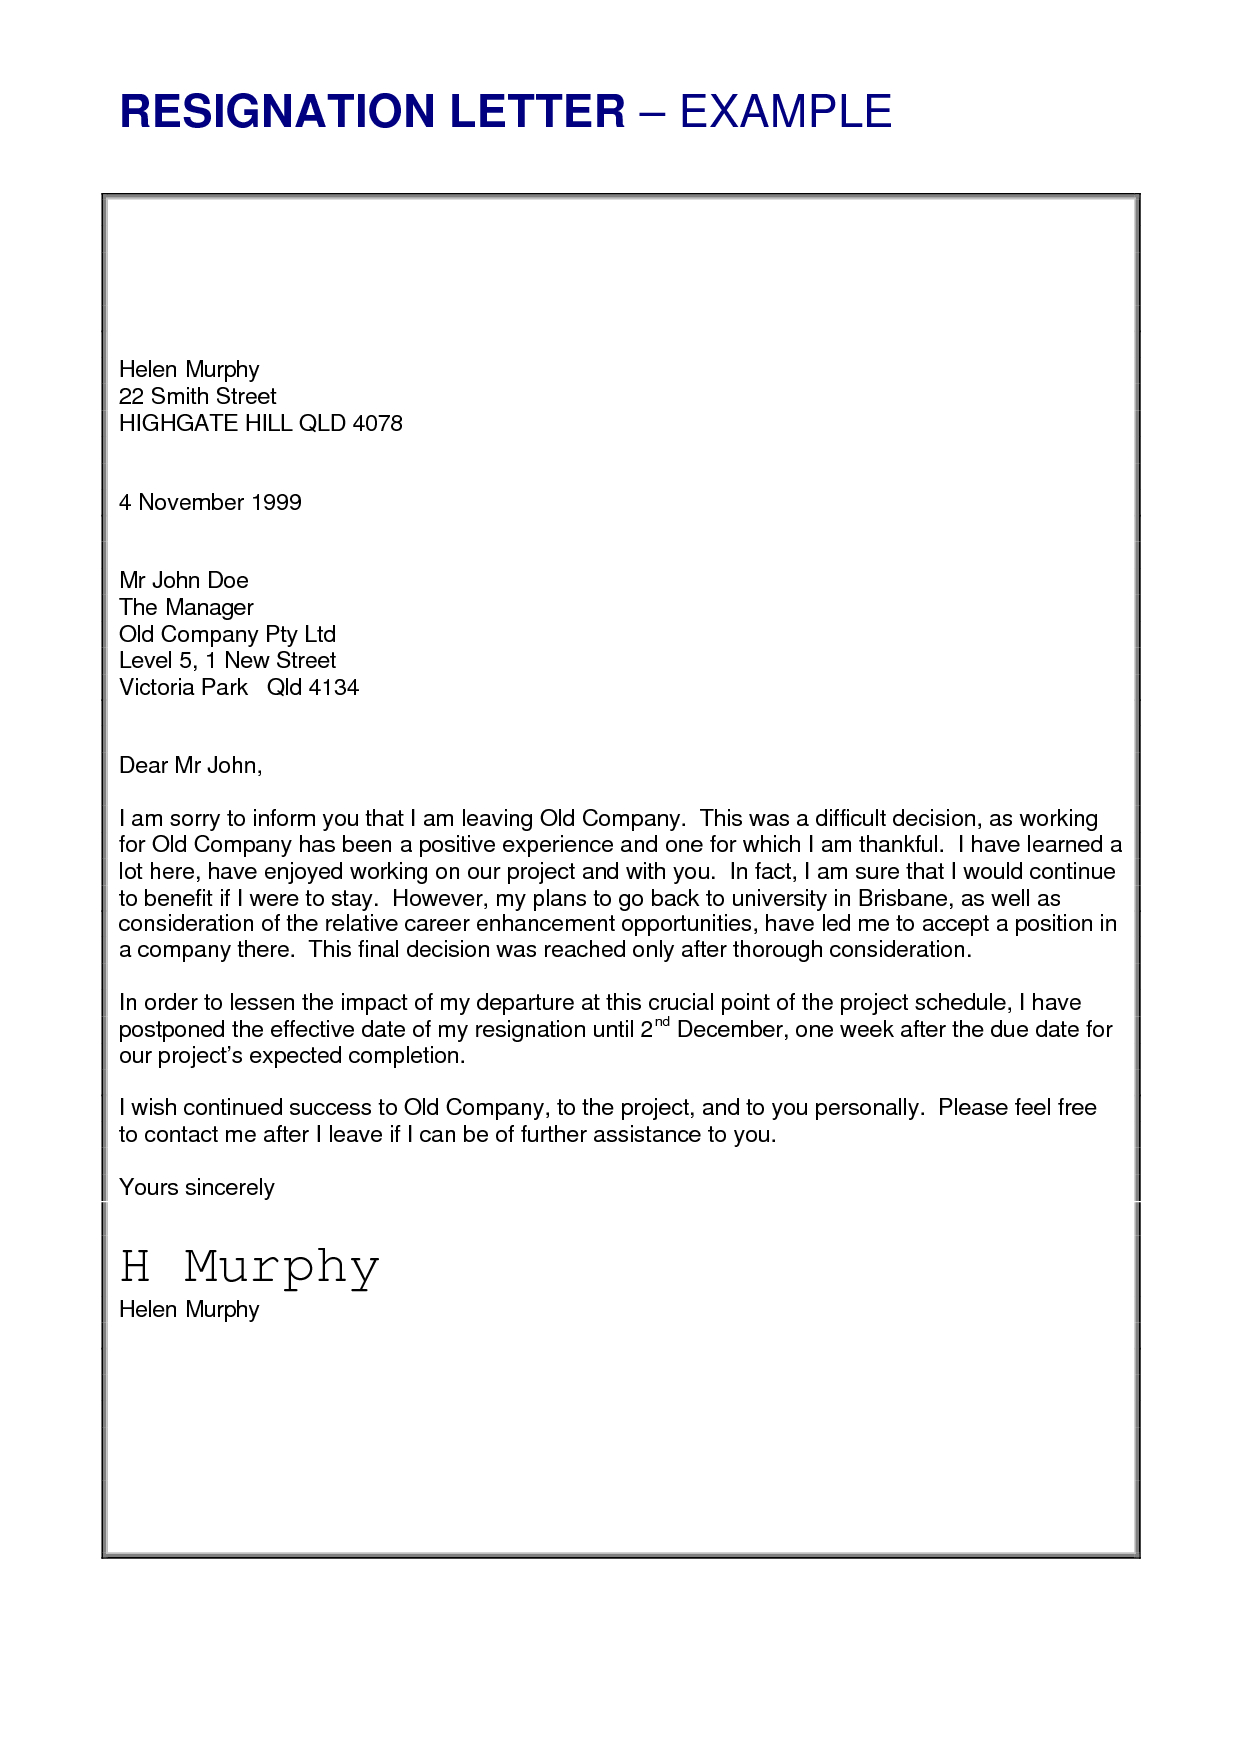 Standard Resignation Letter Template Word - Job Resignation Letter Sample Loganun Blog Job